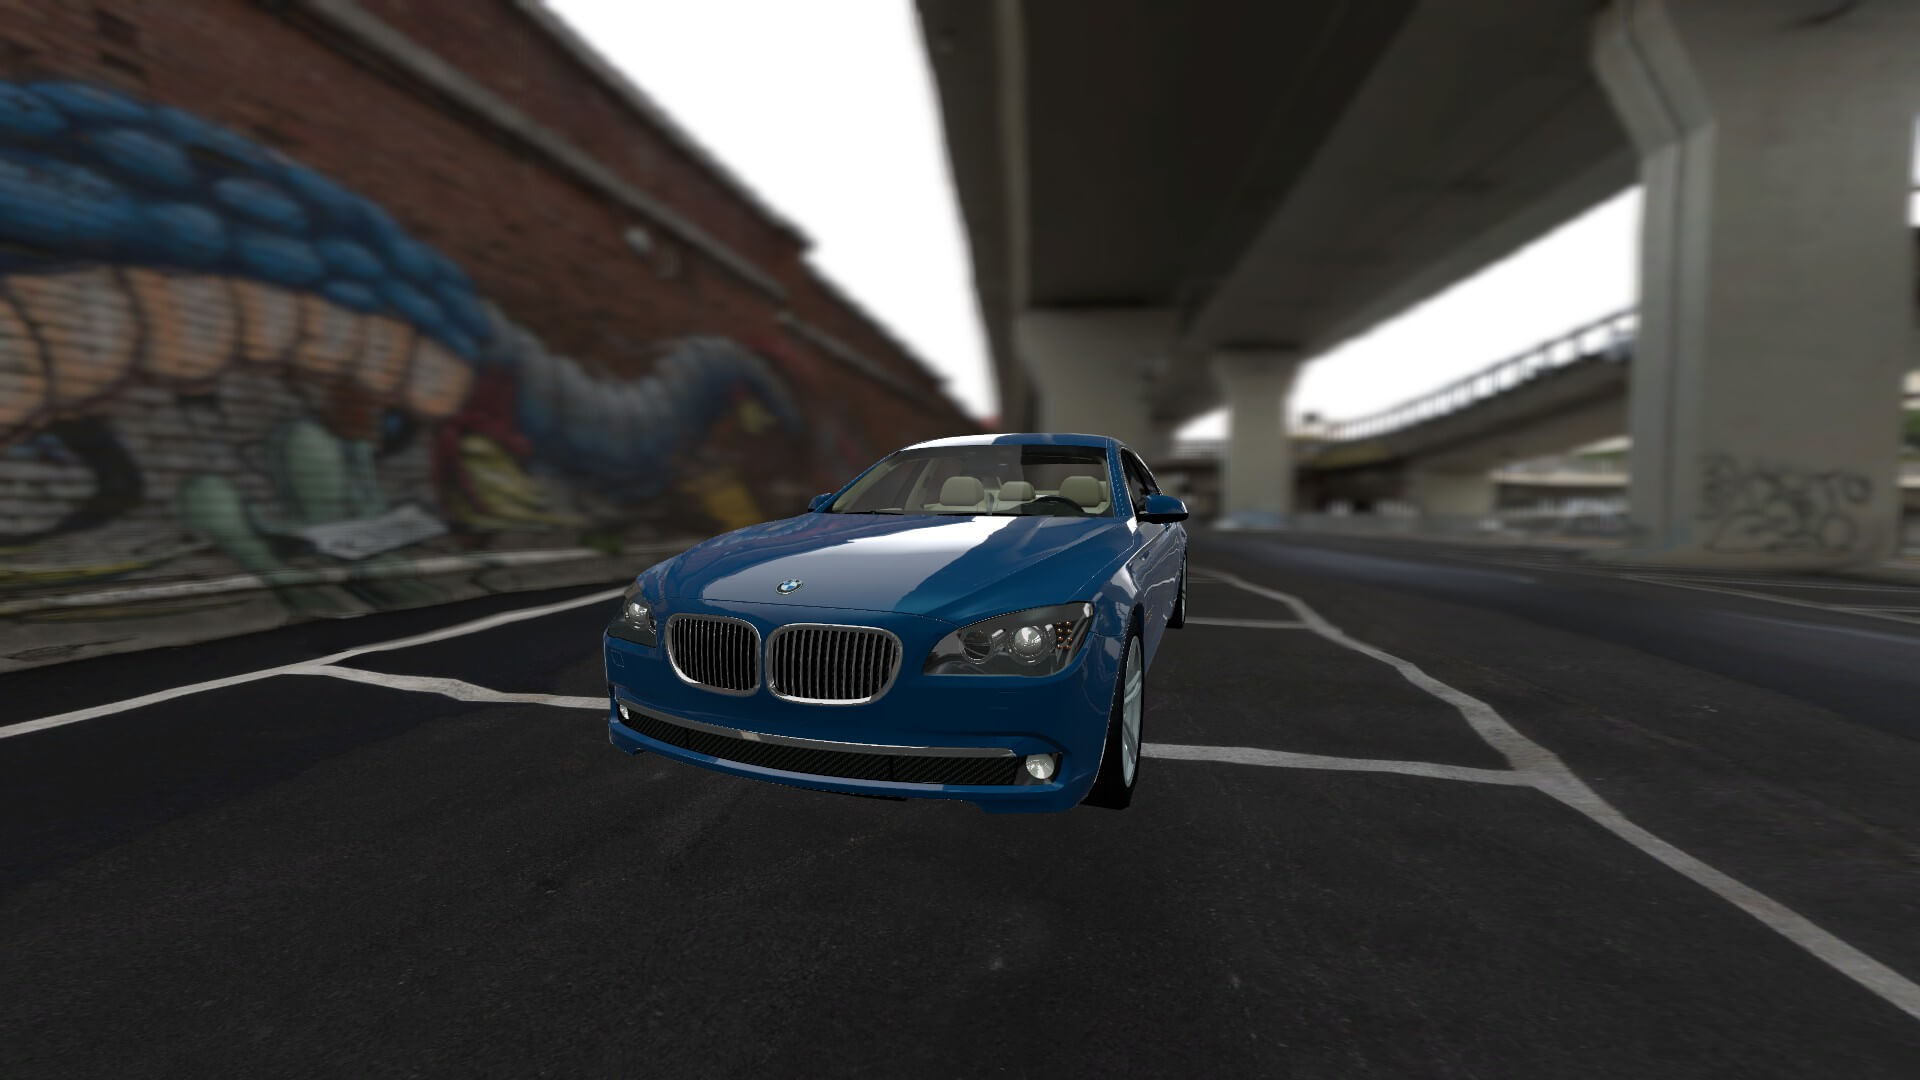 Garry's Mod 13 - BMW 7er F02 2012 [CrSk Autos]